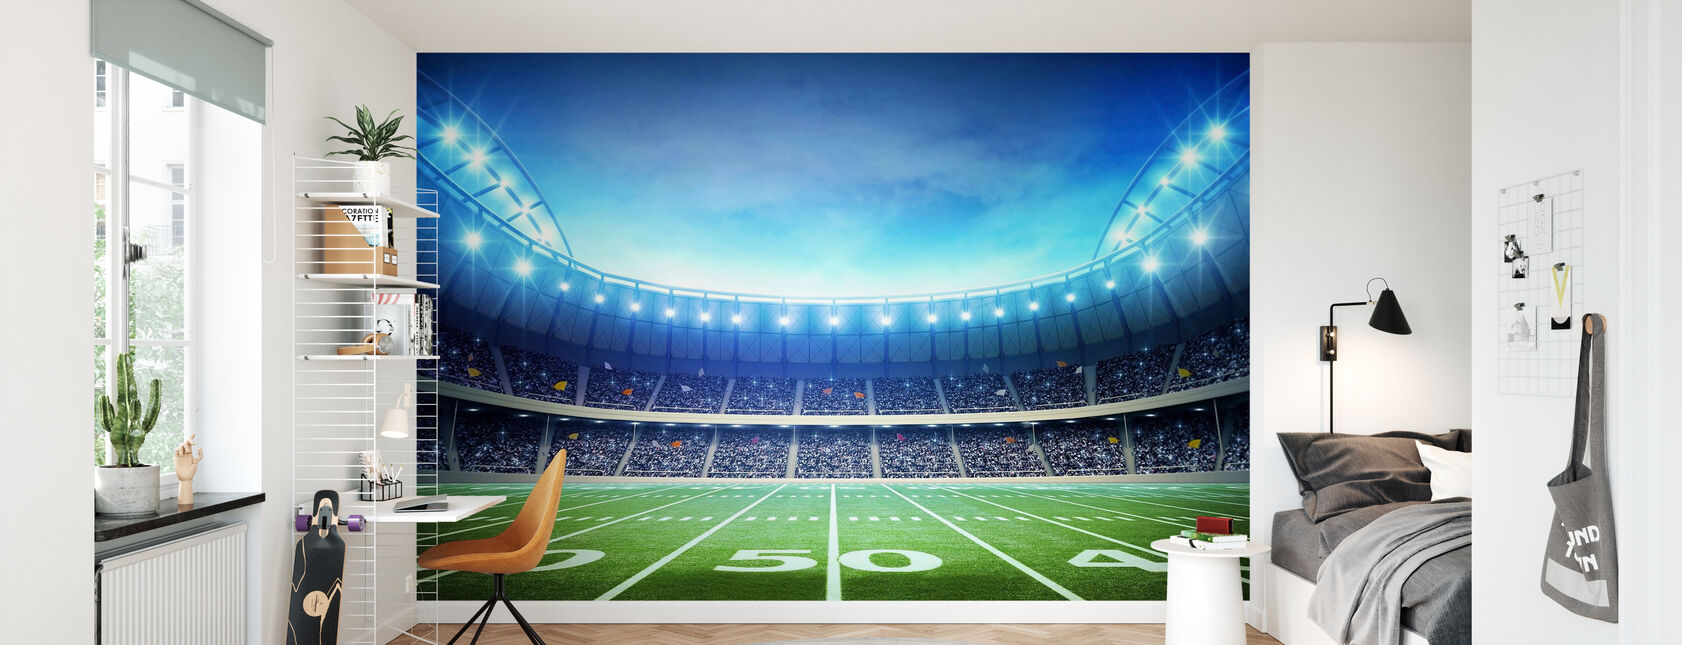 Light of American Stadium - Wallpaper - Kids Room